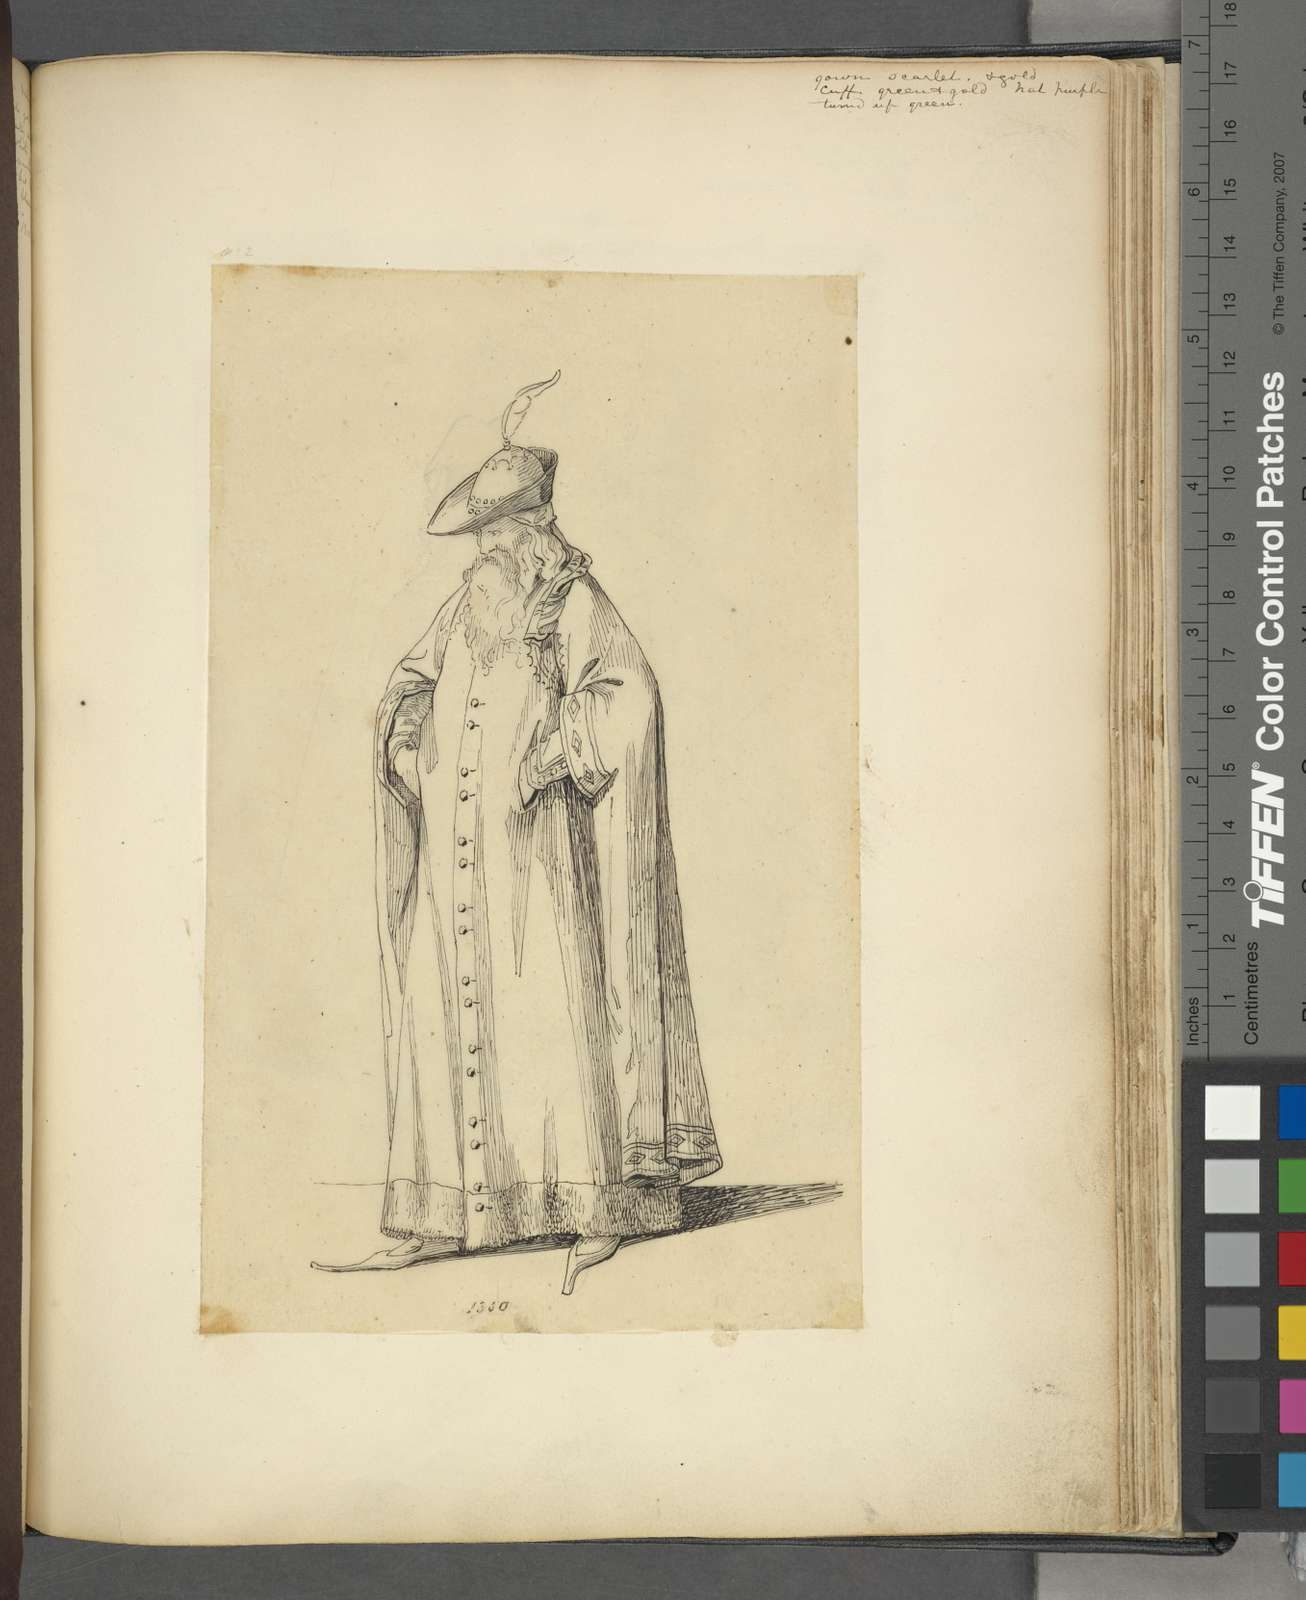 Man with beard in long cape, hat with plume, and pointed shoes.